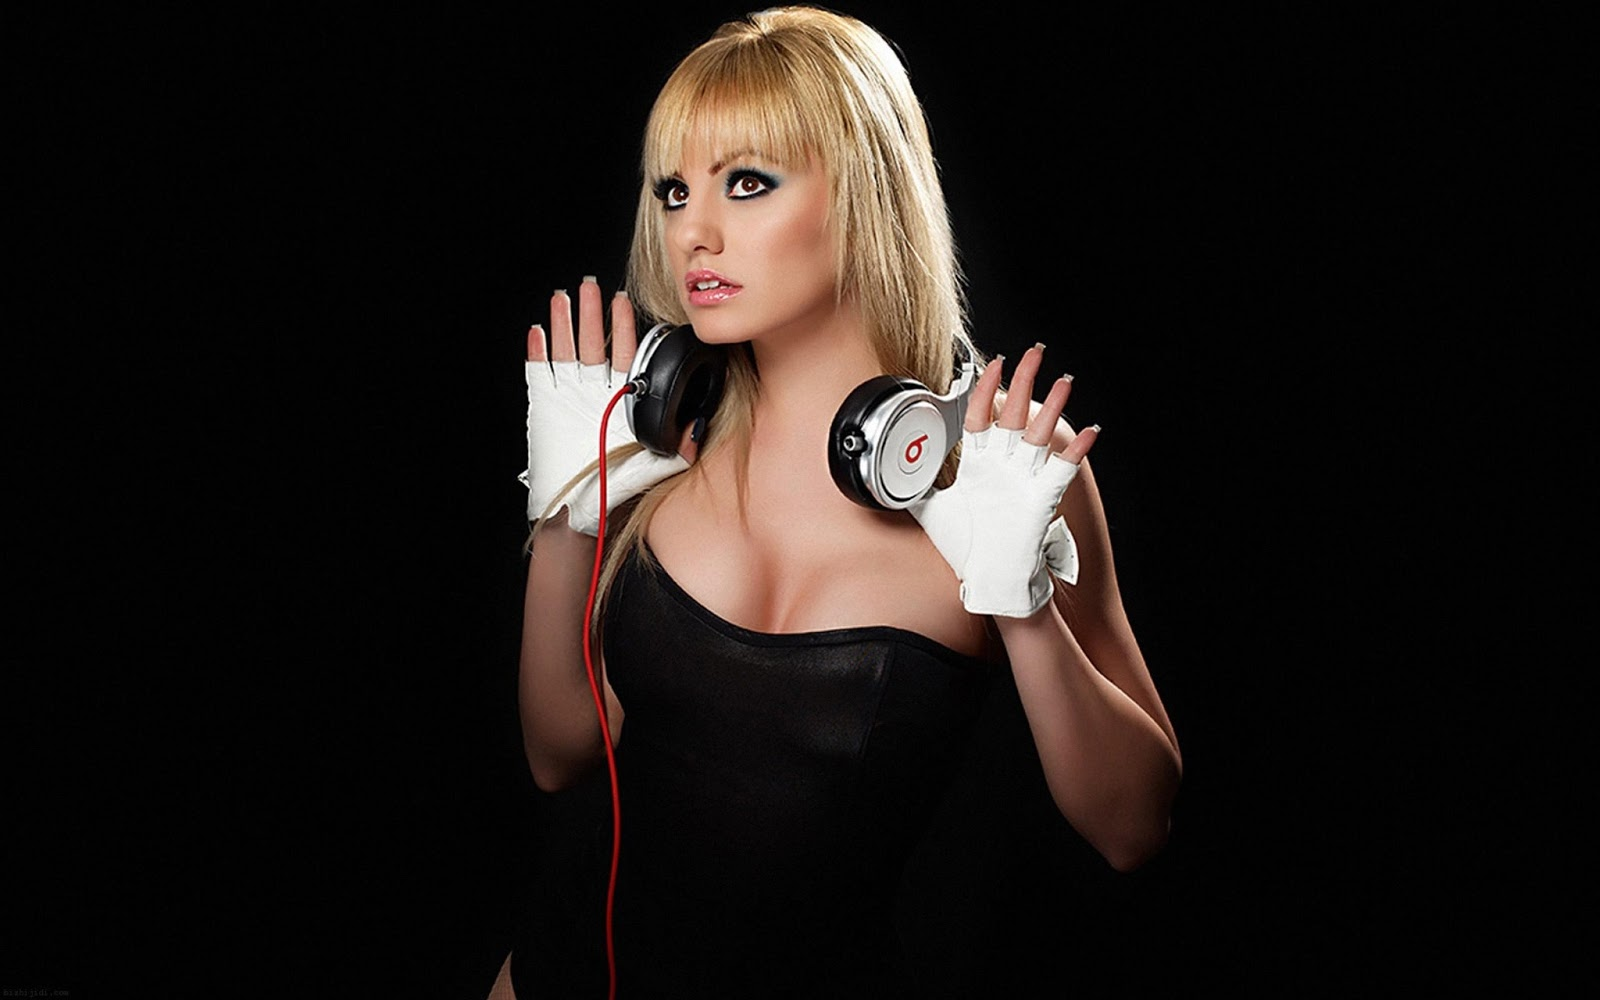 Girl with Dre beats